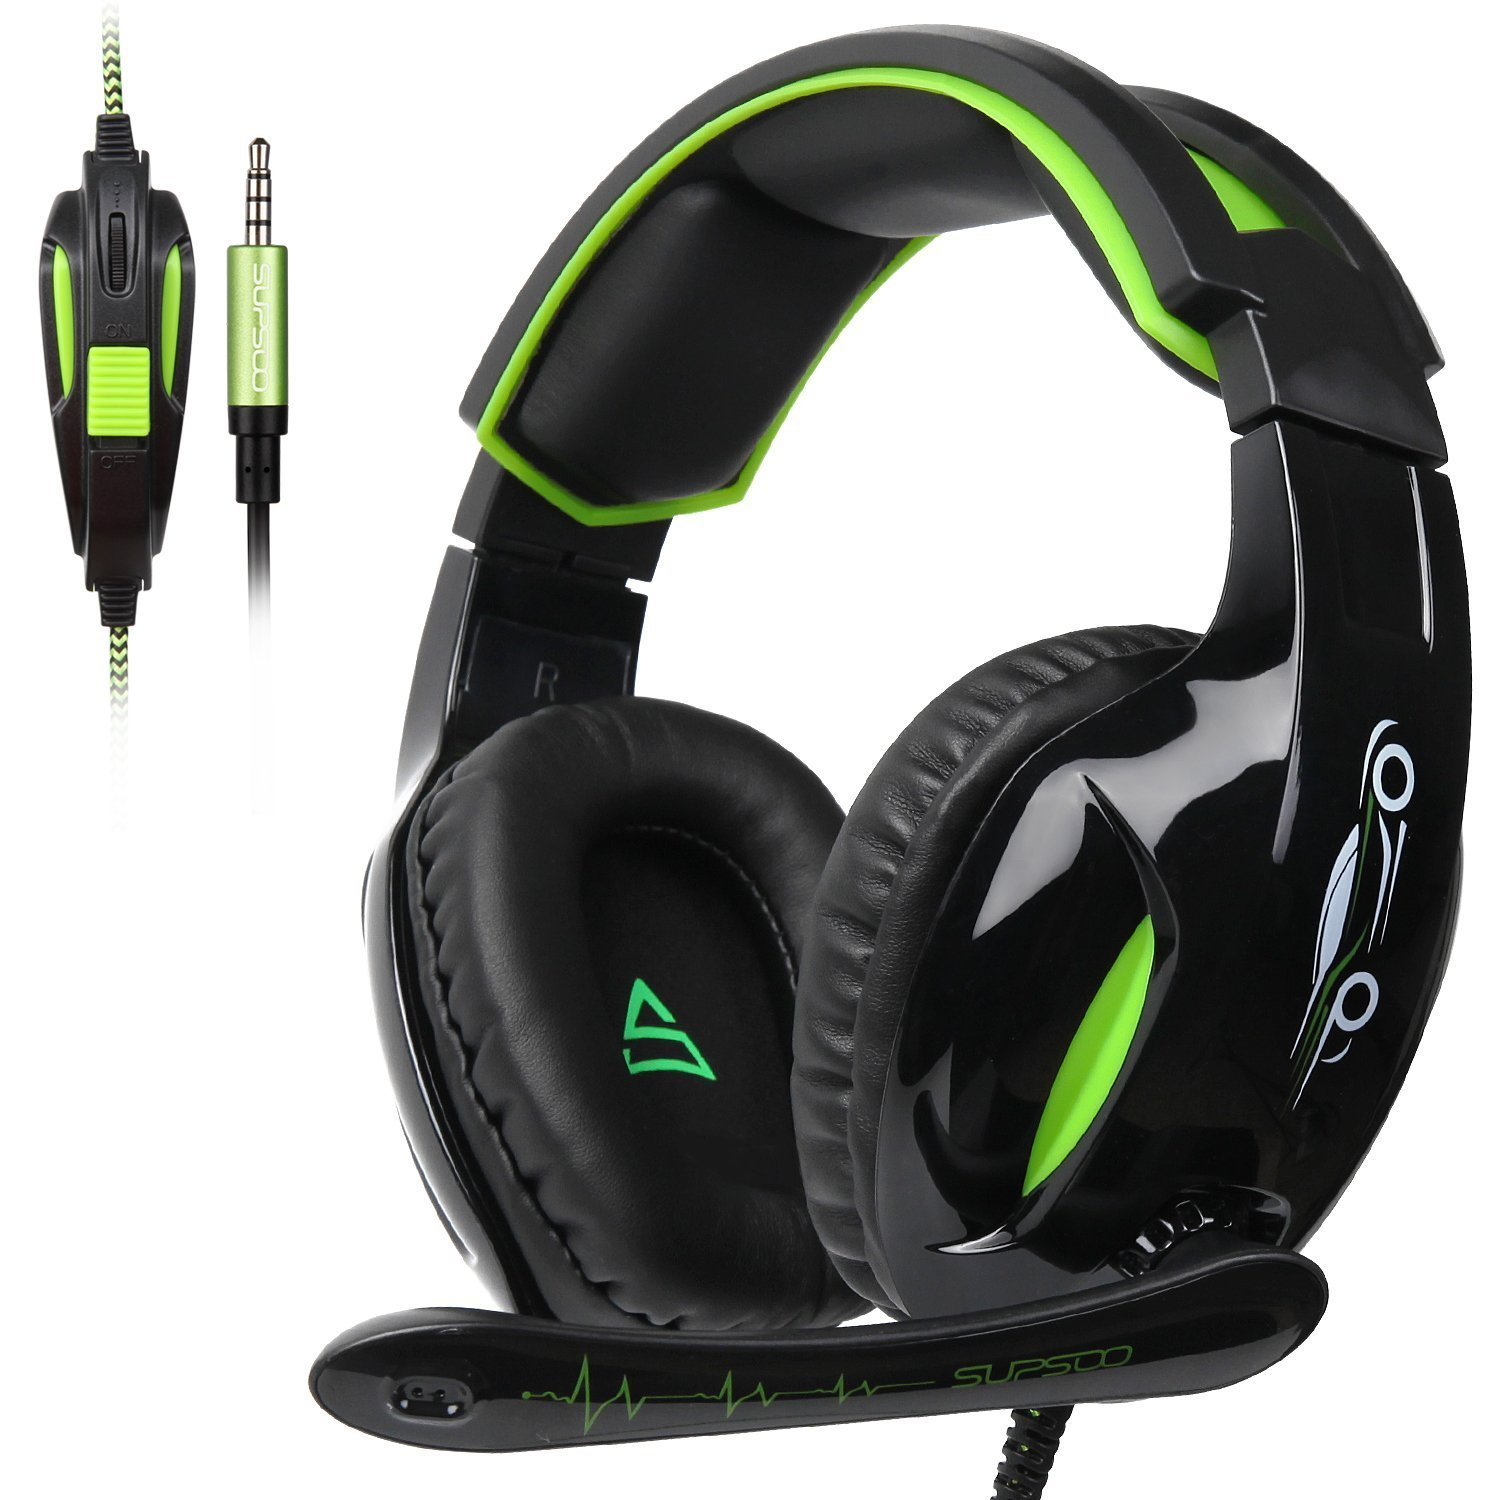 SUPSOO G813 Xbox one Gaming Headset 3.5mm Stereo Wired Over Ear Gaming Headset with Mic Noise Cancelling Volume Control for Xbox One PC Mac PS4 Nintendo Phone Black Green